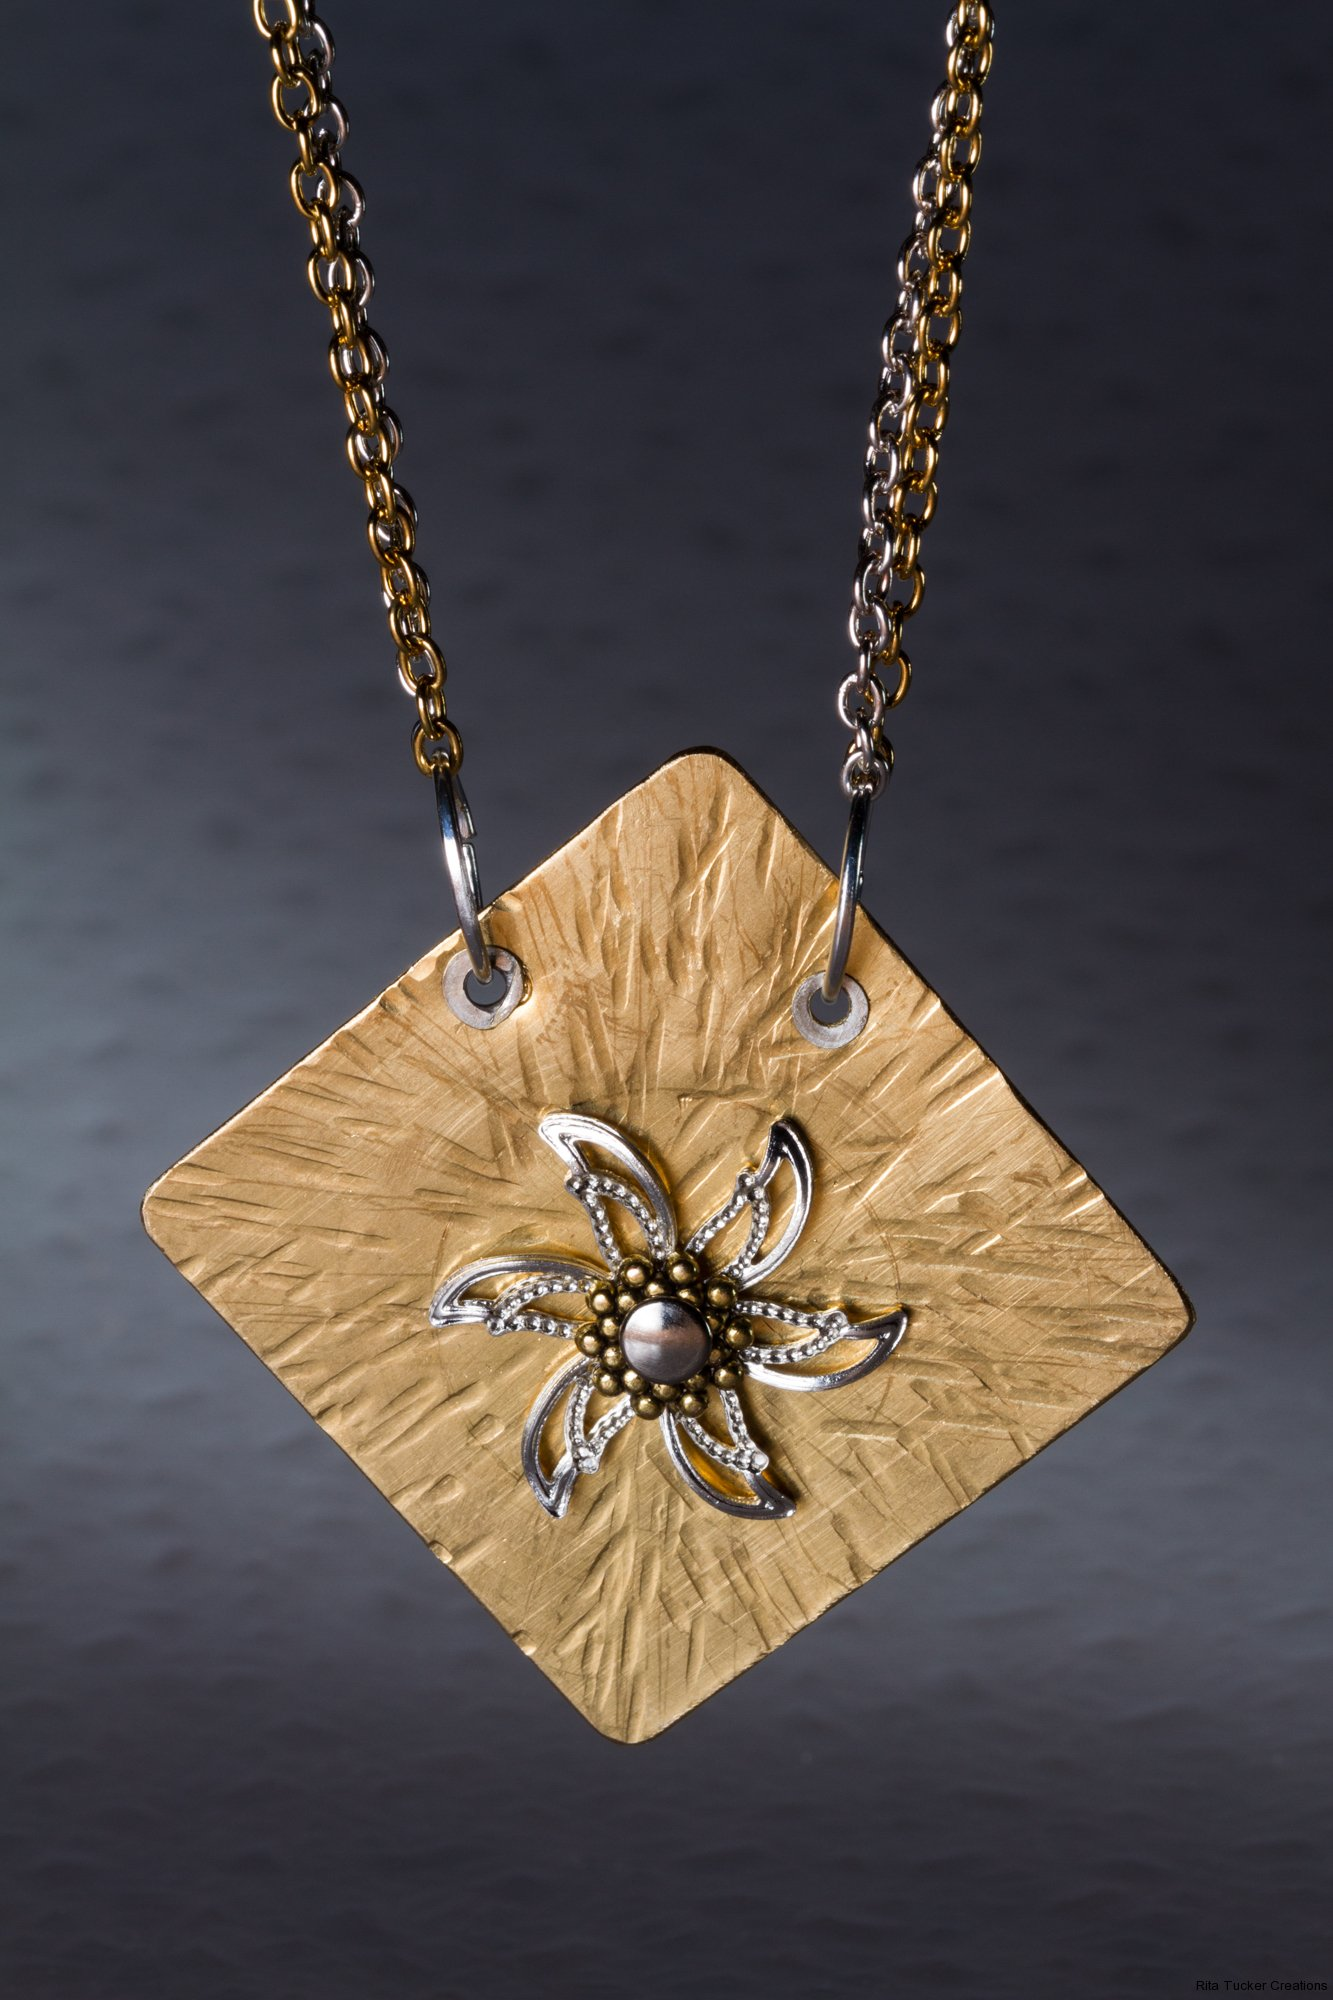 silver and brass necklace with riveted star design